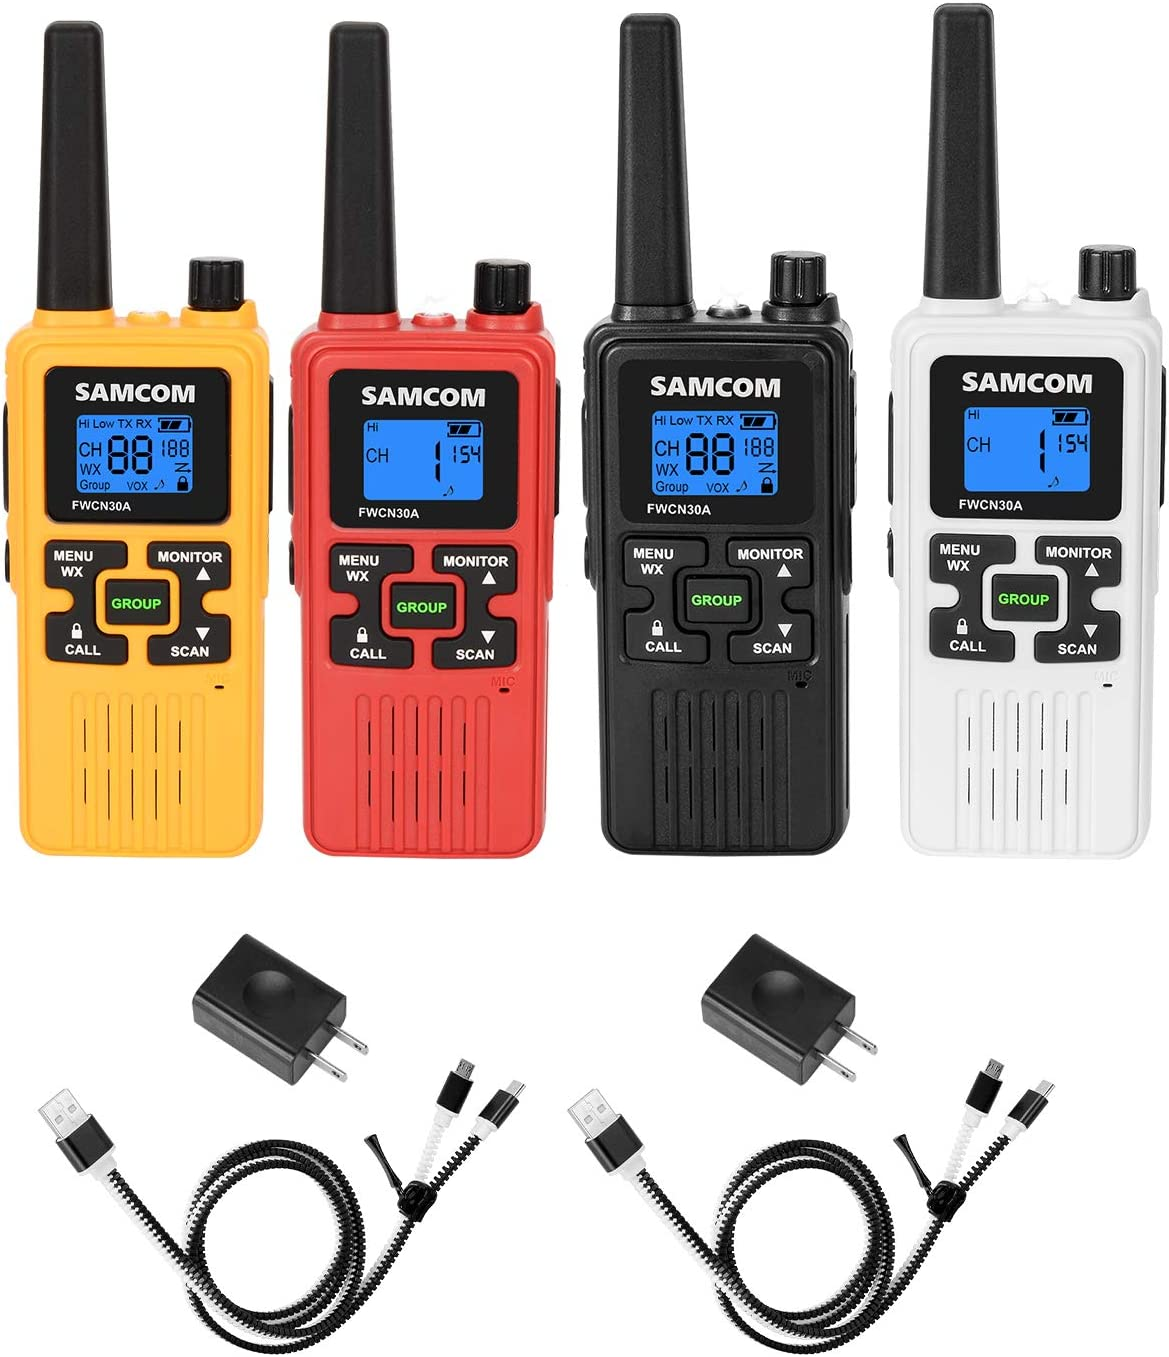 License Free Walkie Talkies 36 Miles Long Range with Group VOX SCAN NOAA Call Alert Function 4 Packs 1250mAh USB Rechargeable Battery LCD Display LED Flashlight FRS Two Way Radio 22CH